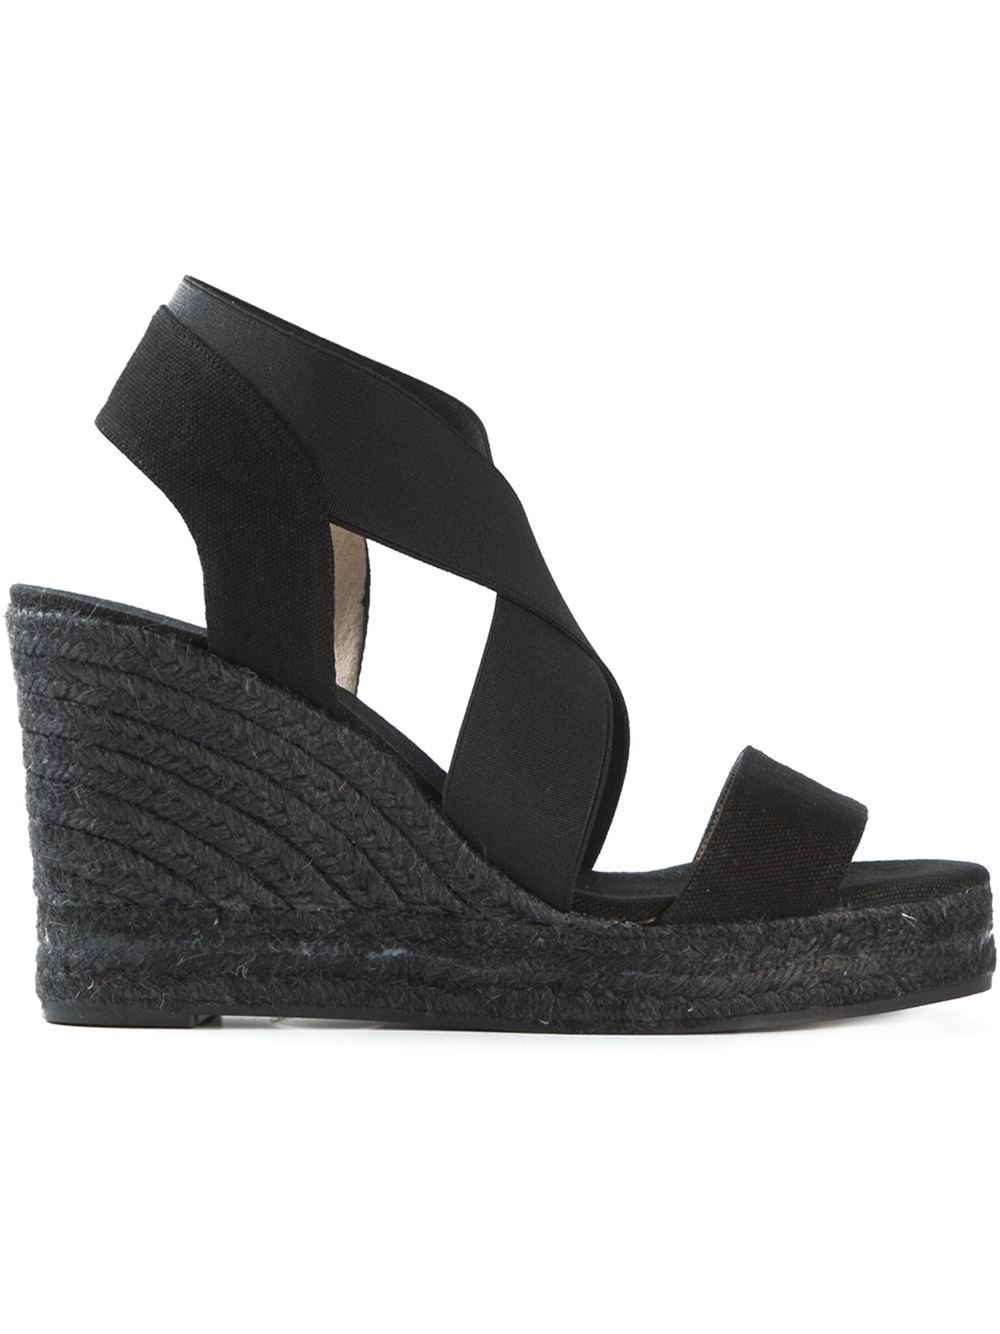 79397a6c230 Castaner  bernard  Wedge Sandals in Black - Lyst